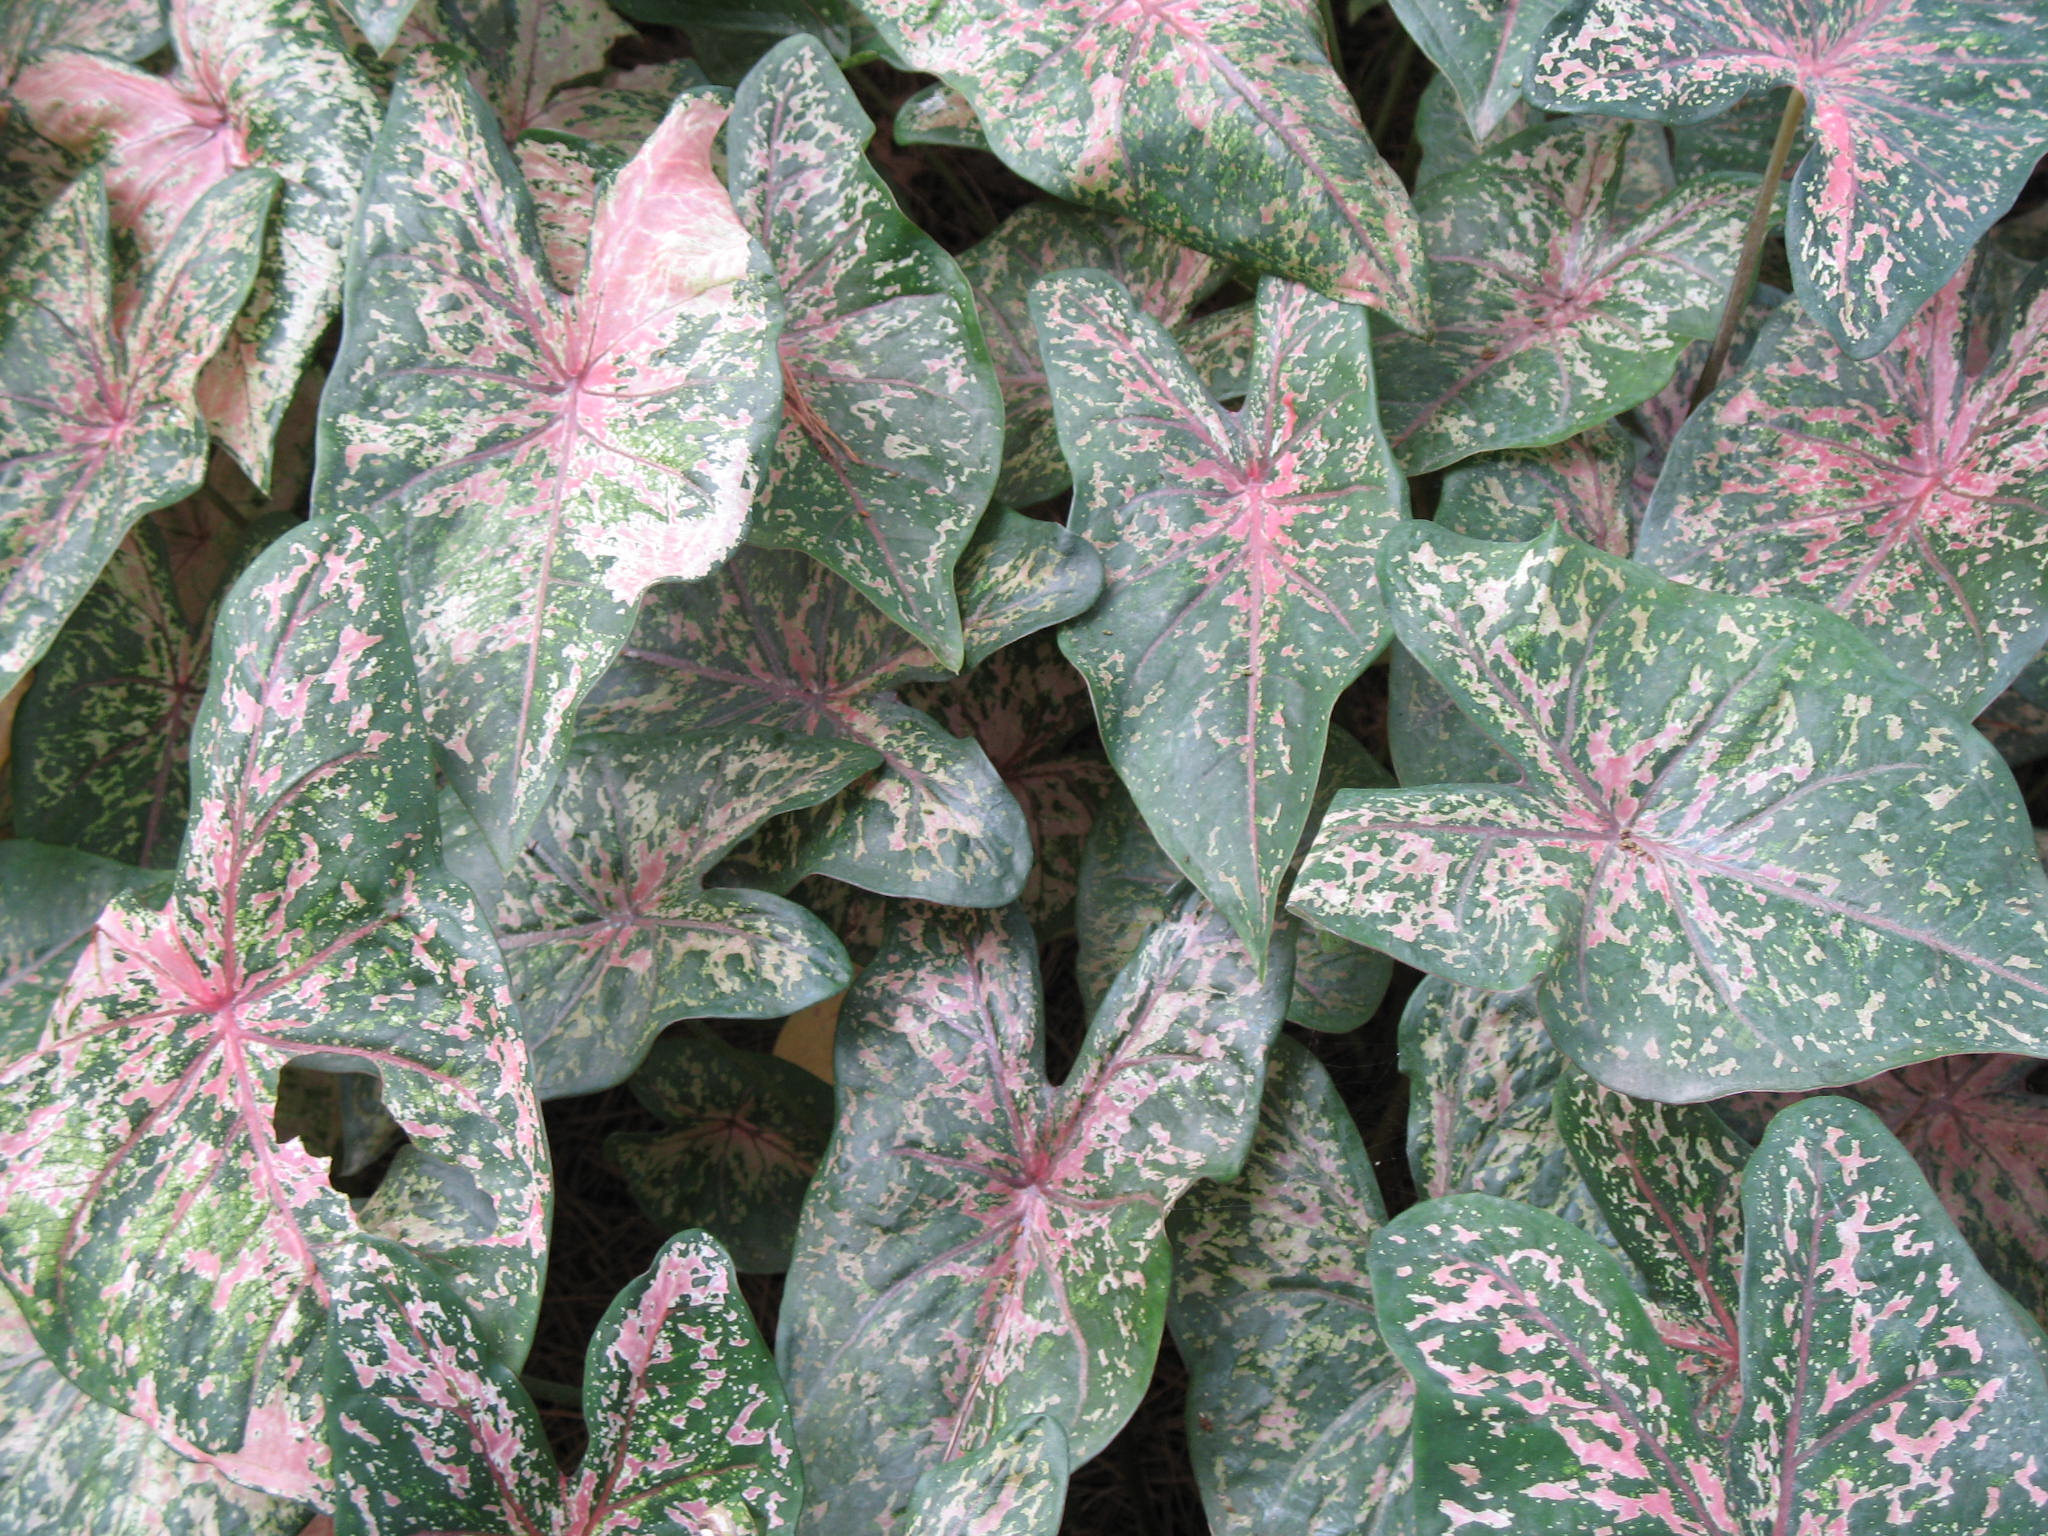 Caladium bicolor 'Pink Beauty'   / Caladium bicolor 'Pink Beauty'